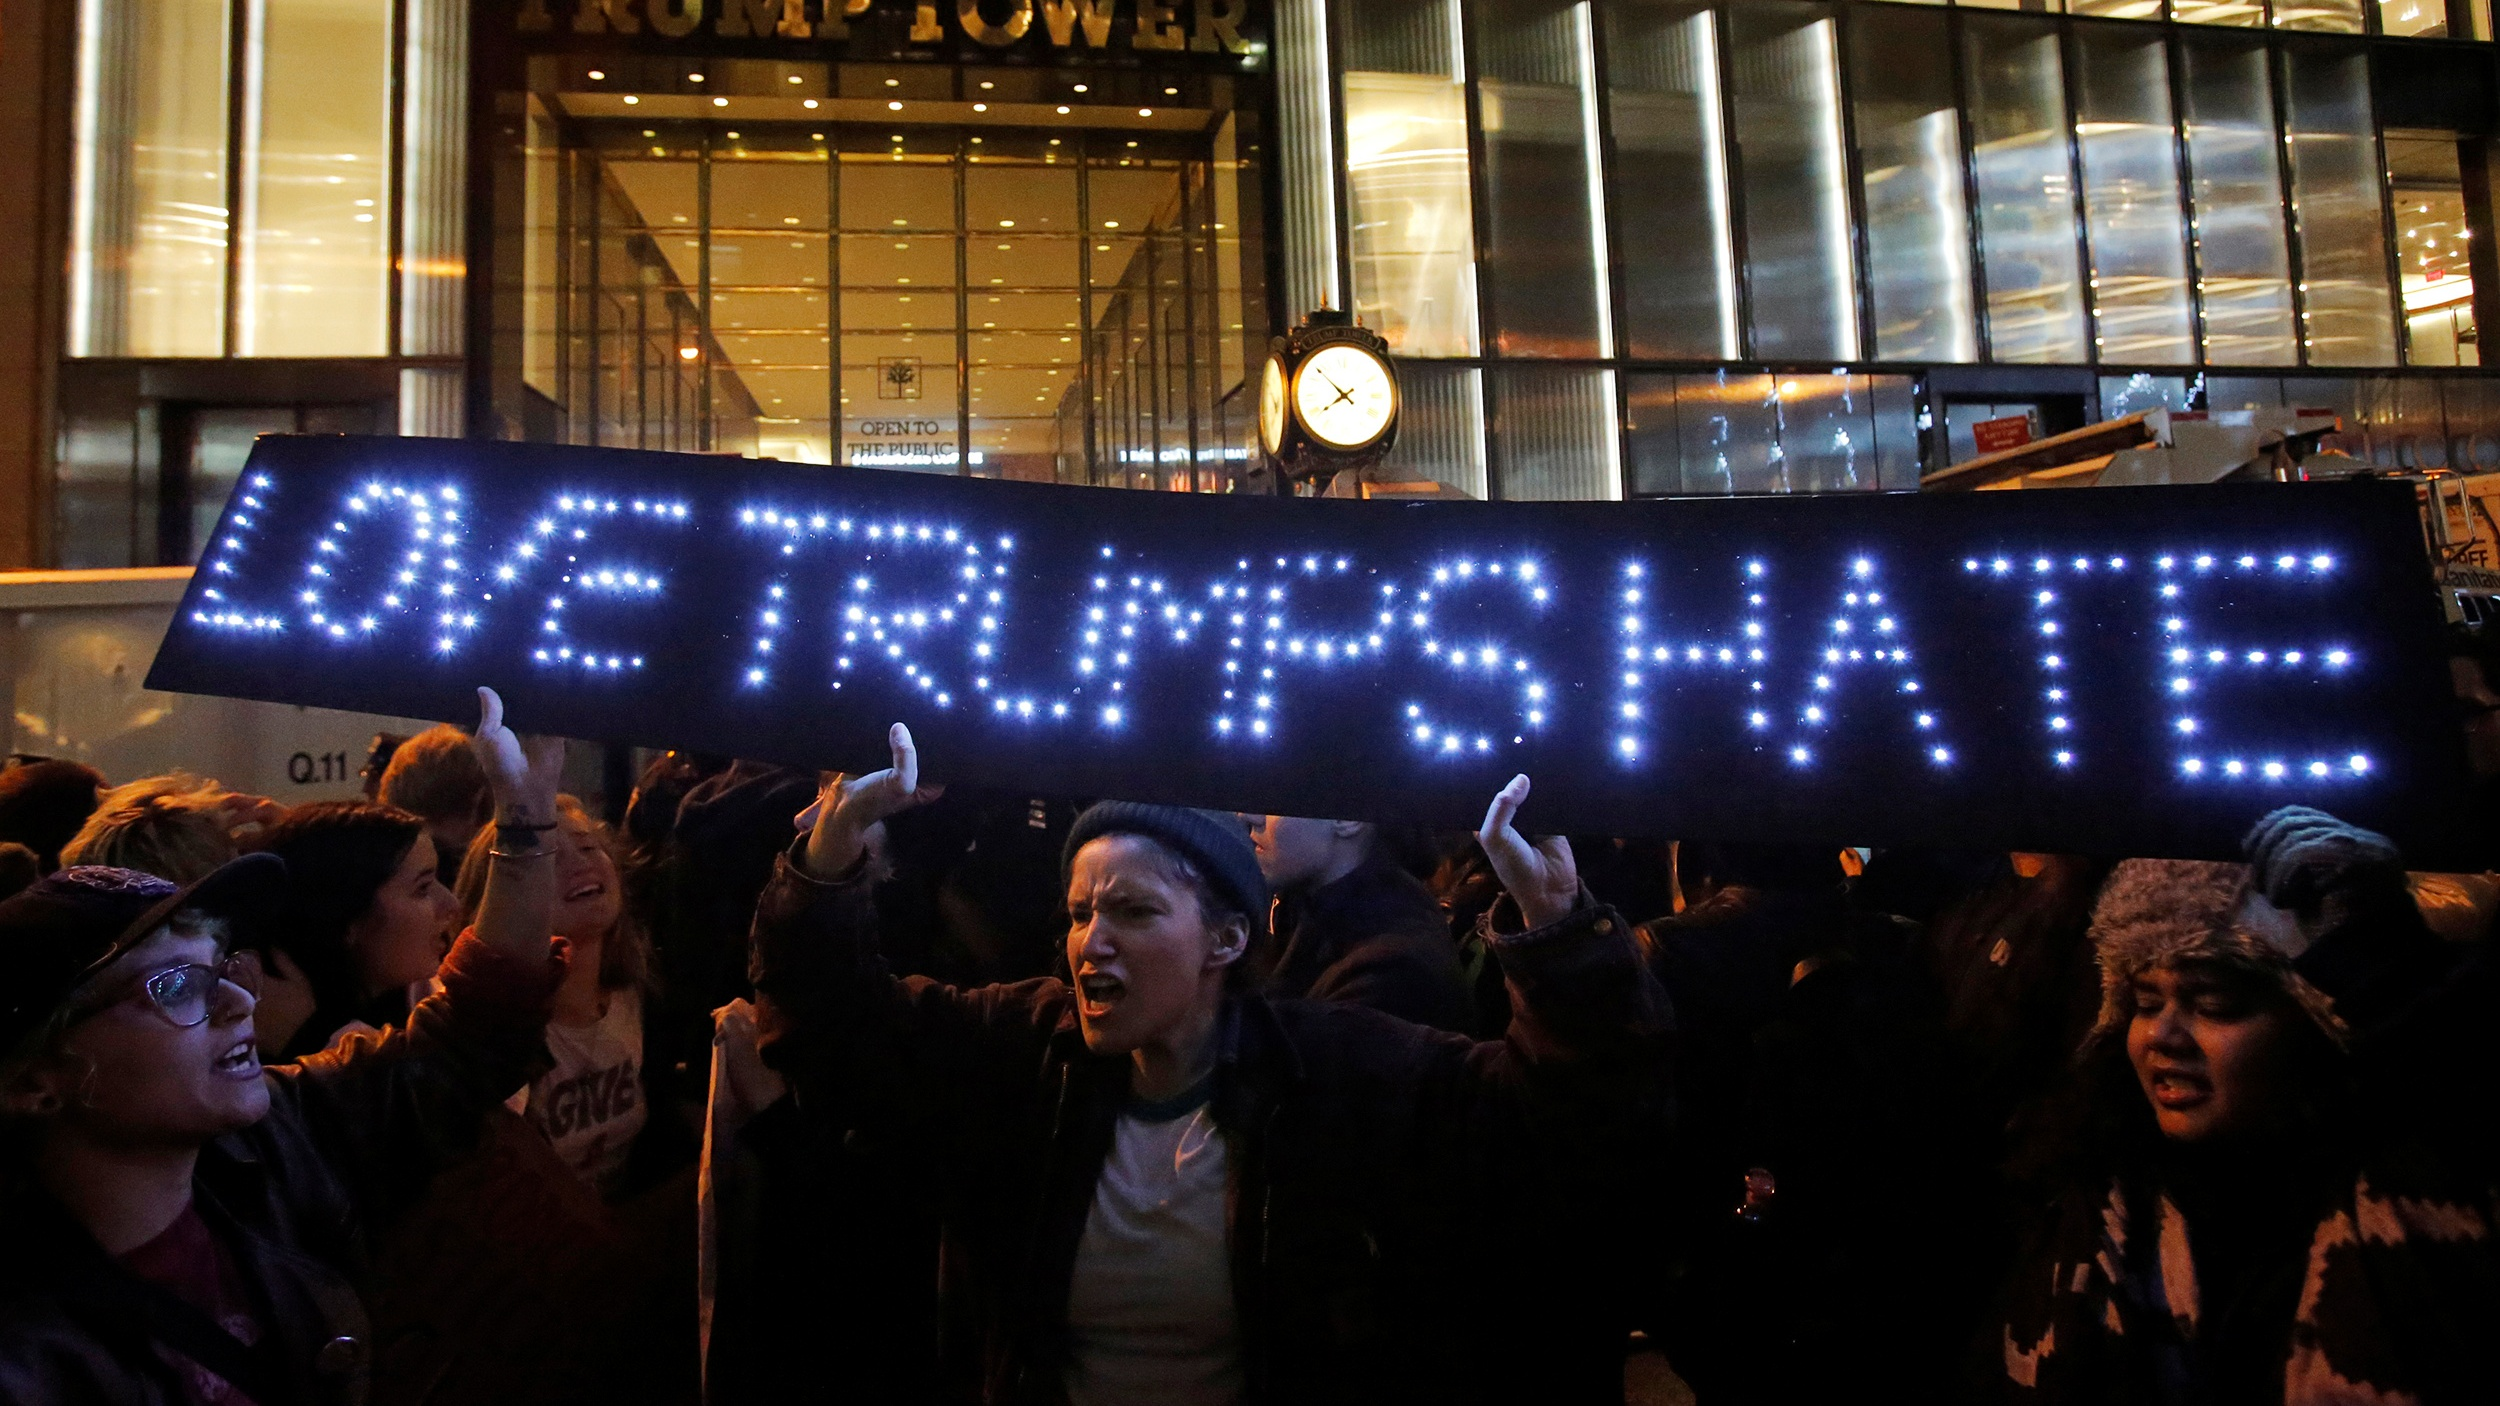 People protest outside Trump Tower following President-elect Donald Trump's election victory in Manhattan, New York, U.S., November 9, 2016. REUTERS/Andrew Kelly